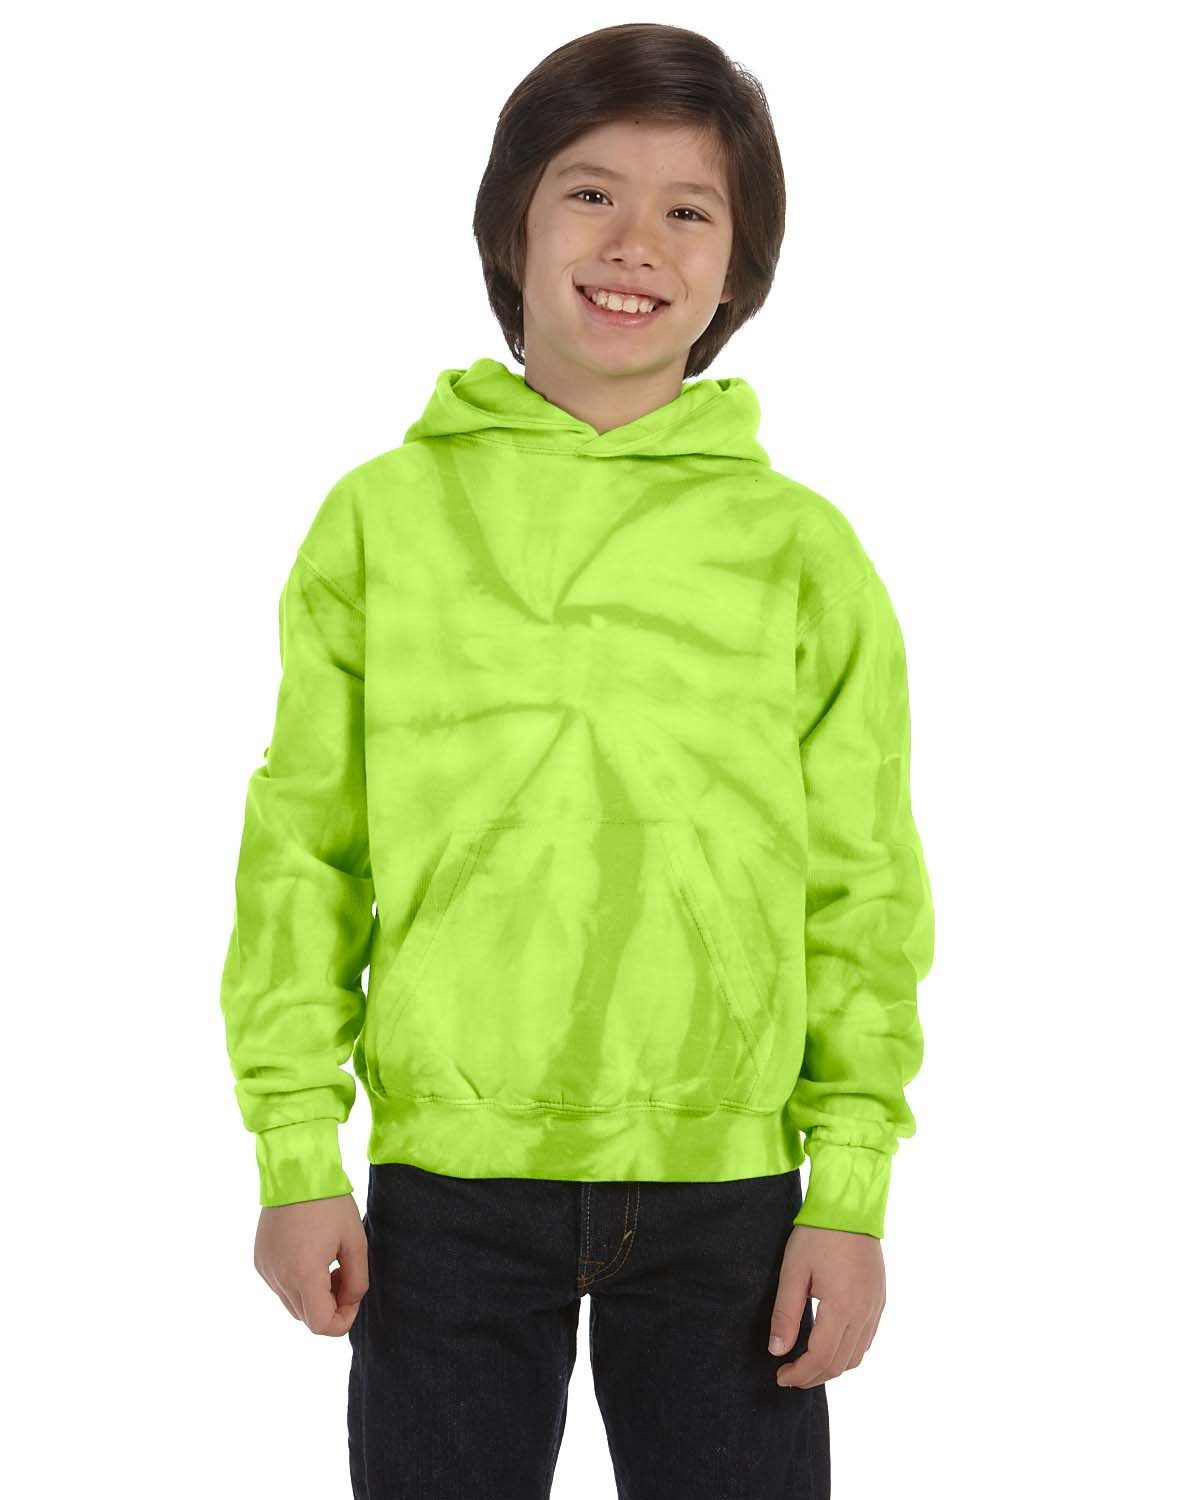 Tie-Dye Youth 8.5 oz. Tie-Dyed Pullover Hooded Sweatshirt SPIDER LIME